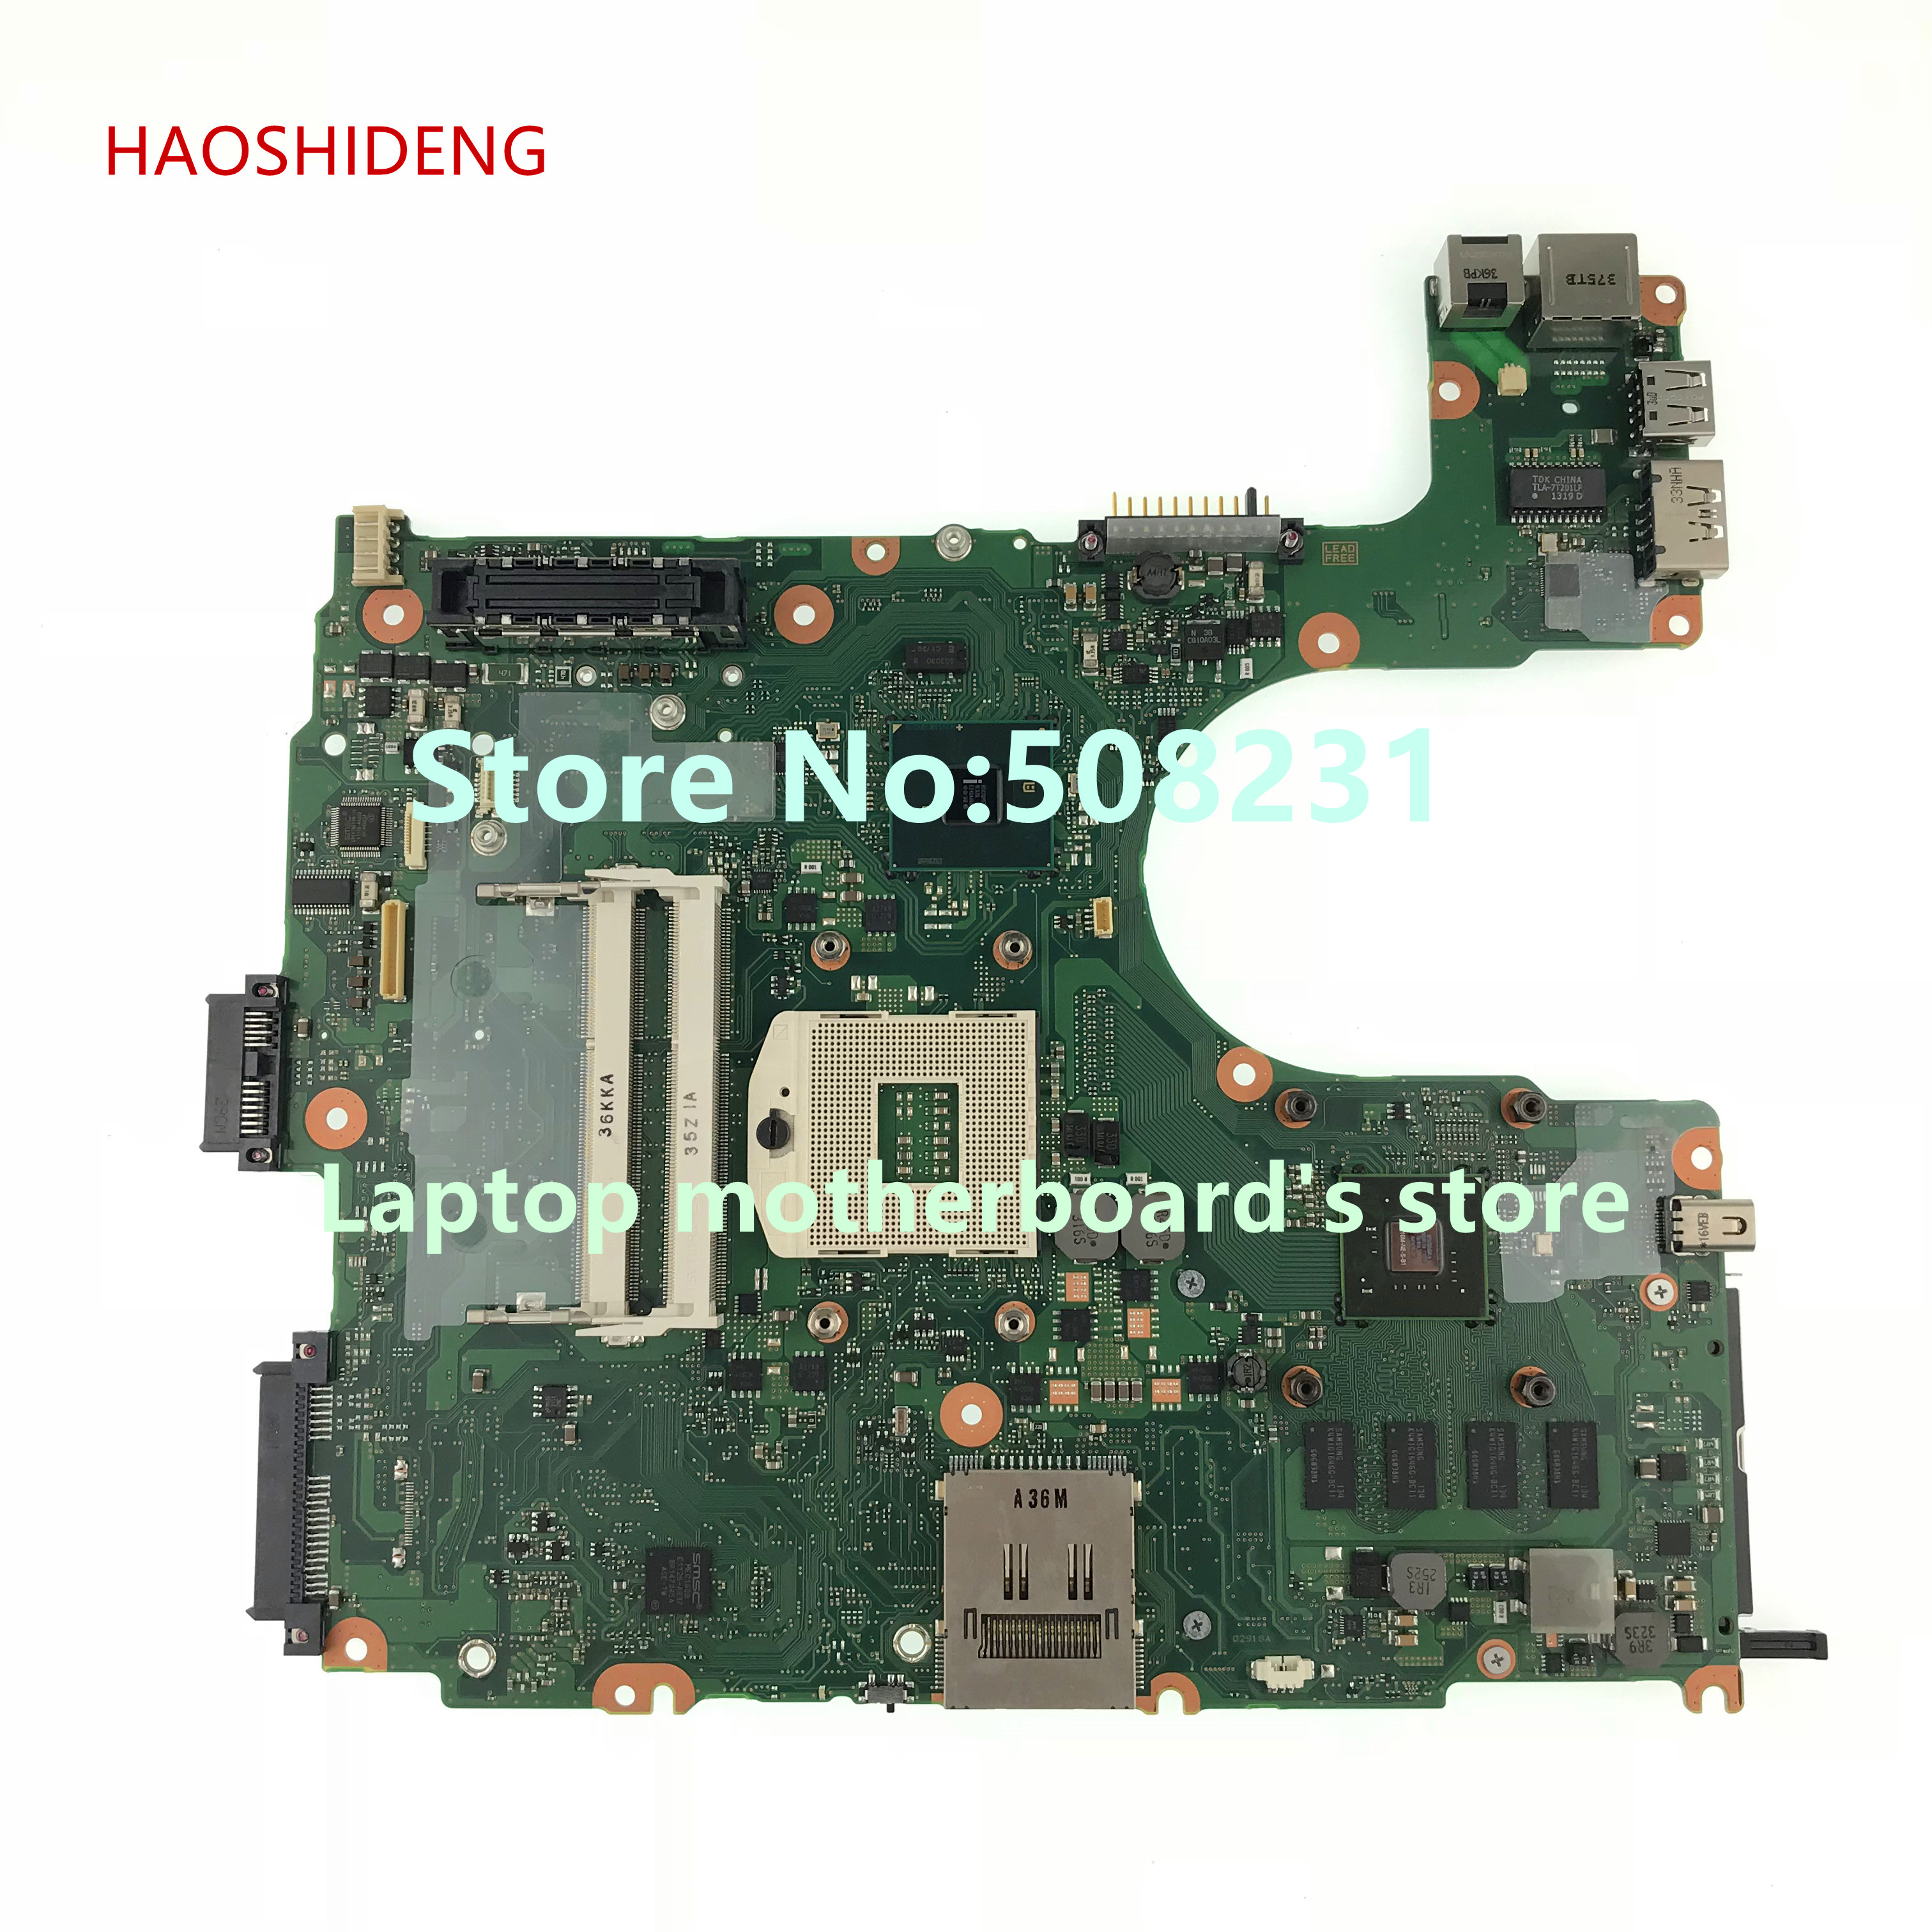 HAOSHIDENG P000539360 FHVSYC mainboard for Toshiba Tecra A11 laptop motherboard with nVidia Quadro NVS 3100M fully Tested for toshiba tecra m11 laptop motherboard integrated fgnsy1 a5a002769010 a stock no 999